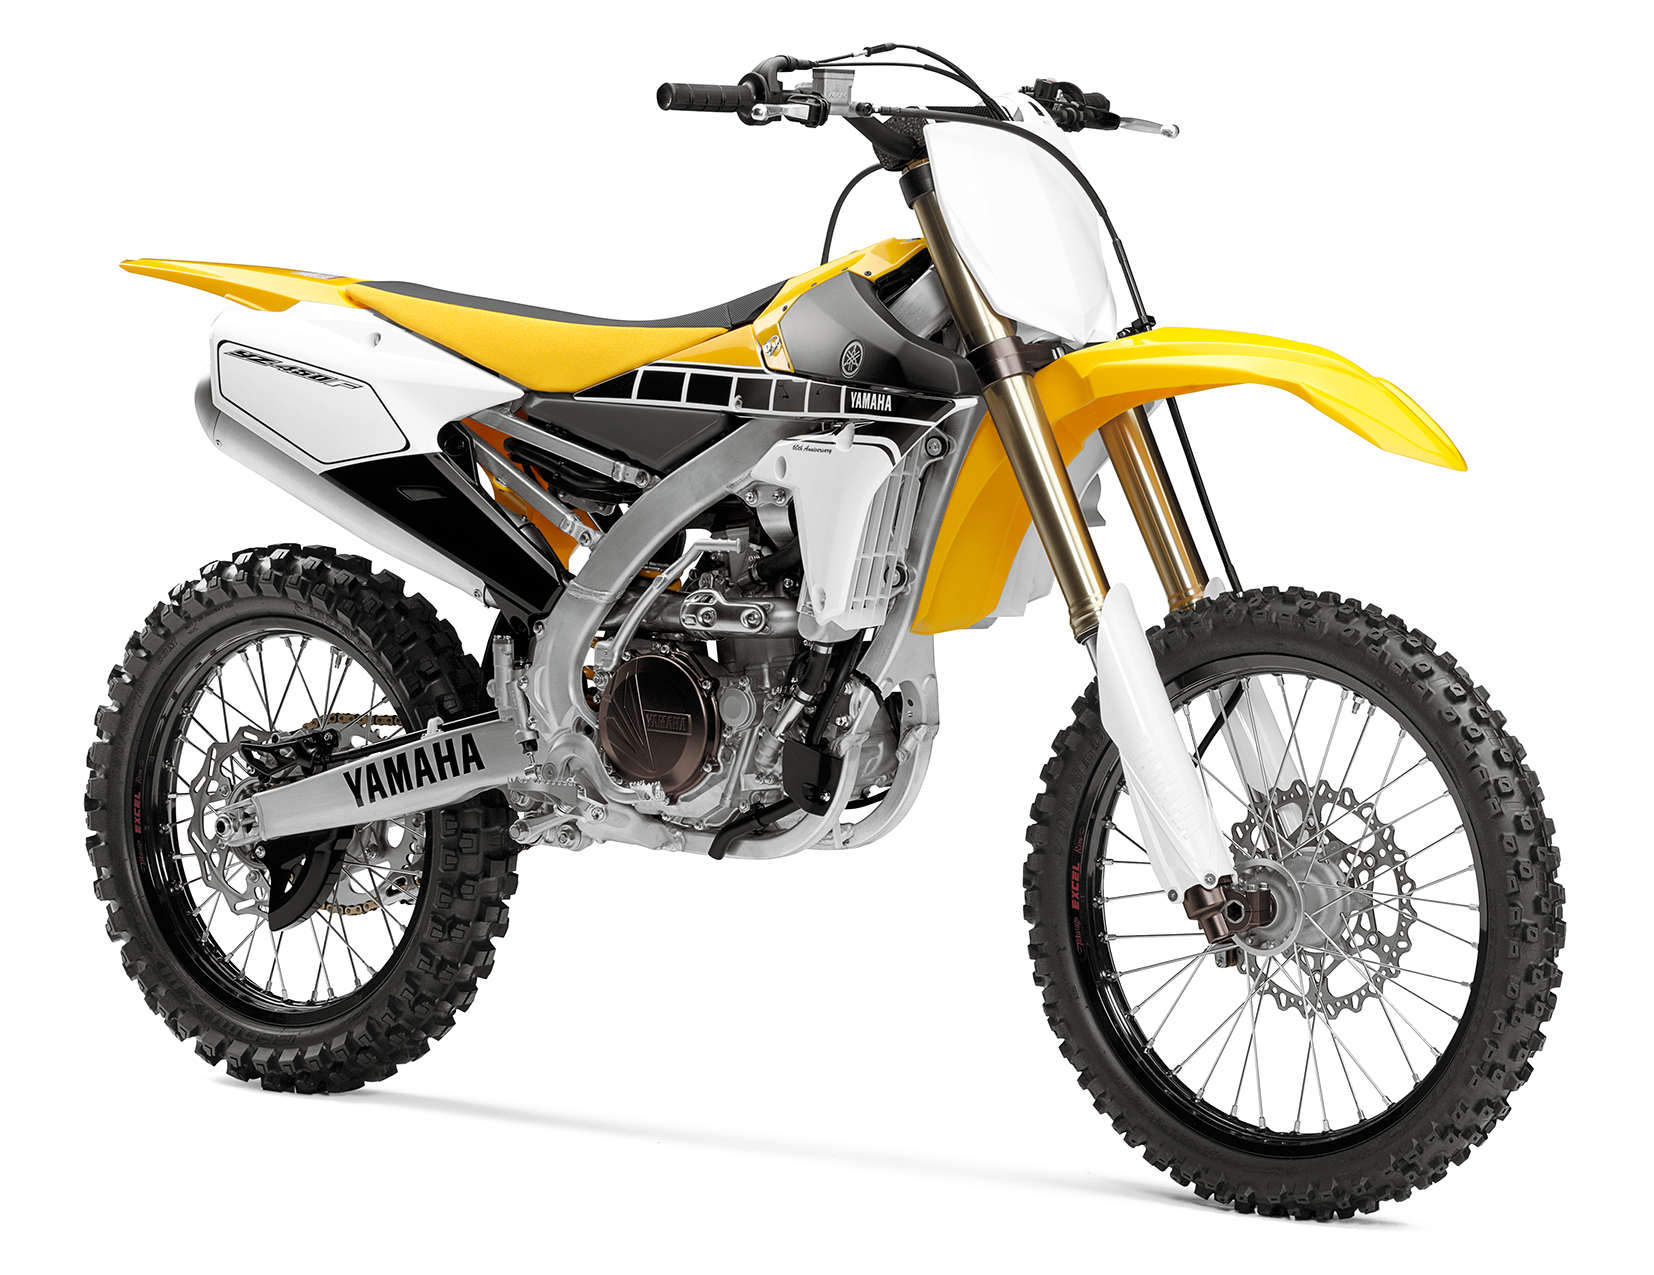 yamaha dirt bikes images - photo #7